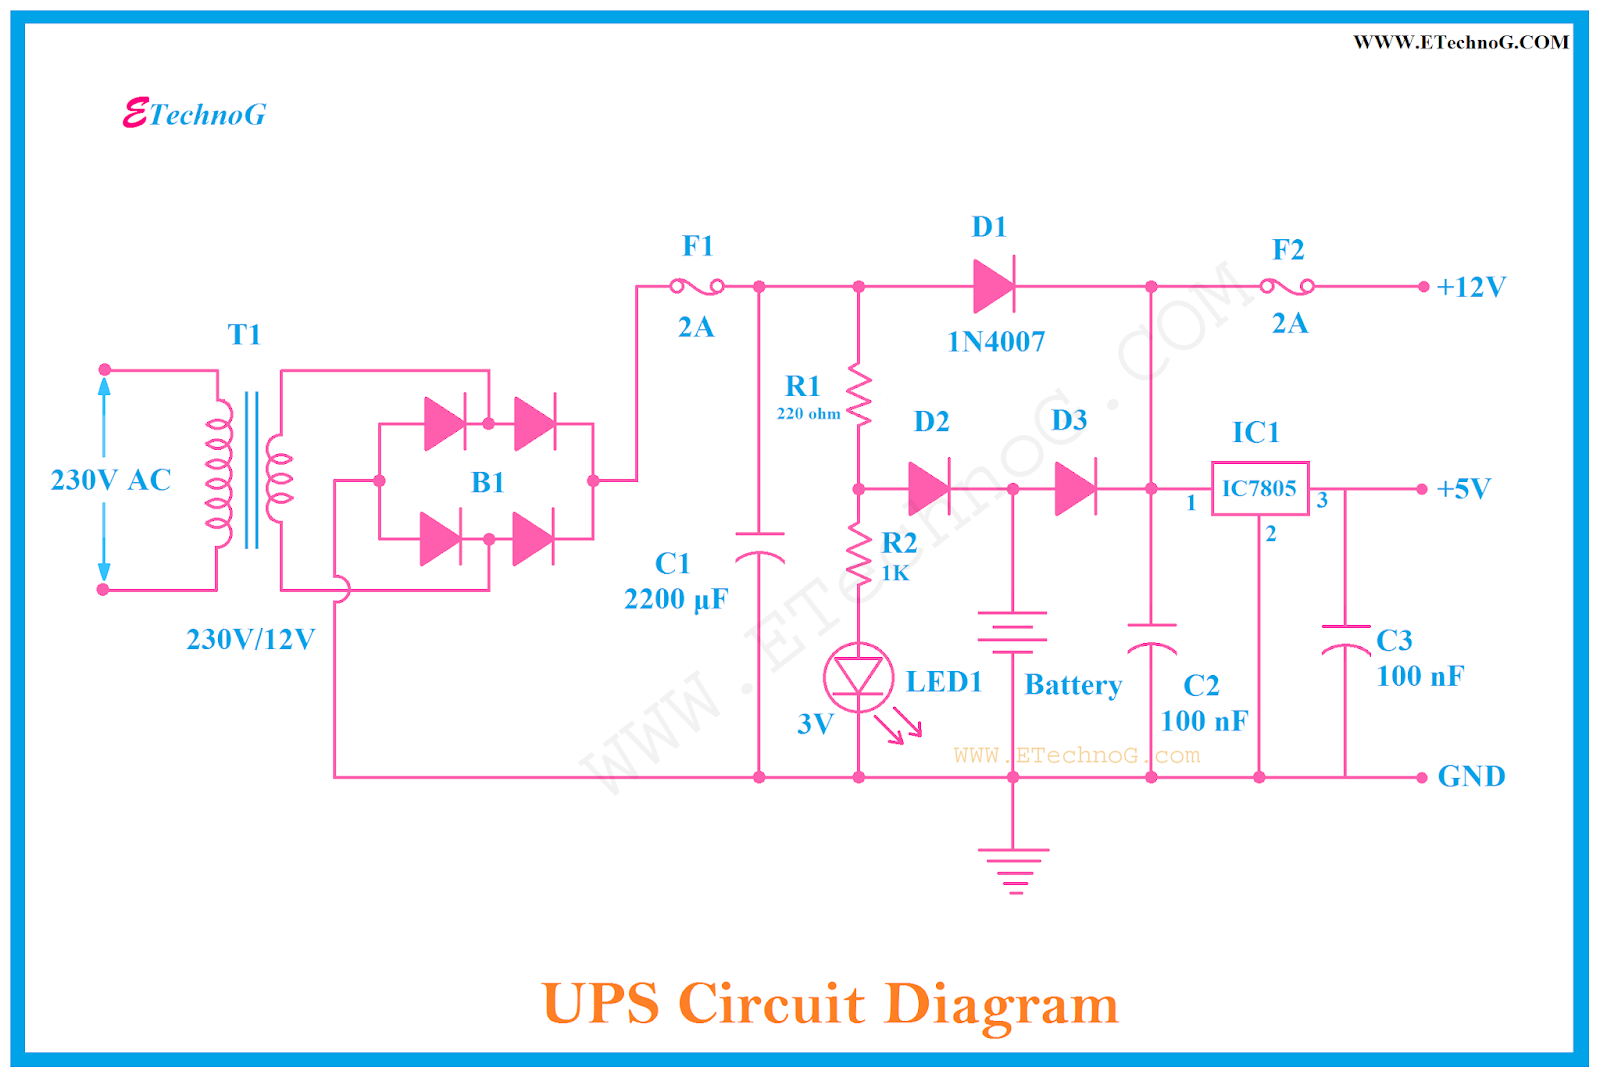 circuit diagram of ups ups circuit diagram for home made [ 1600 x 1078 Pixel ]